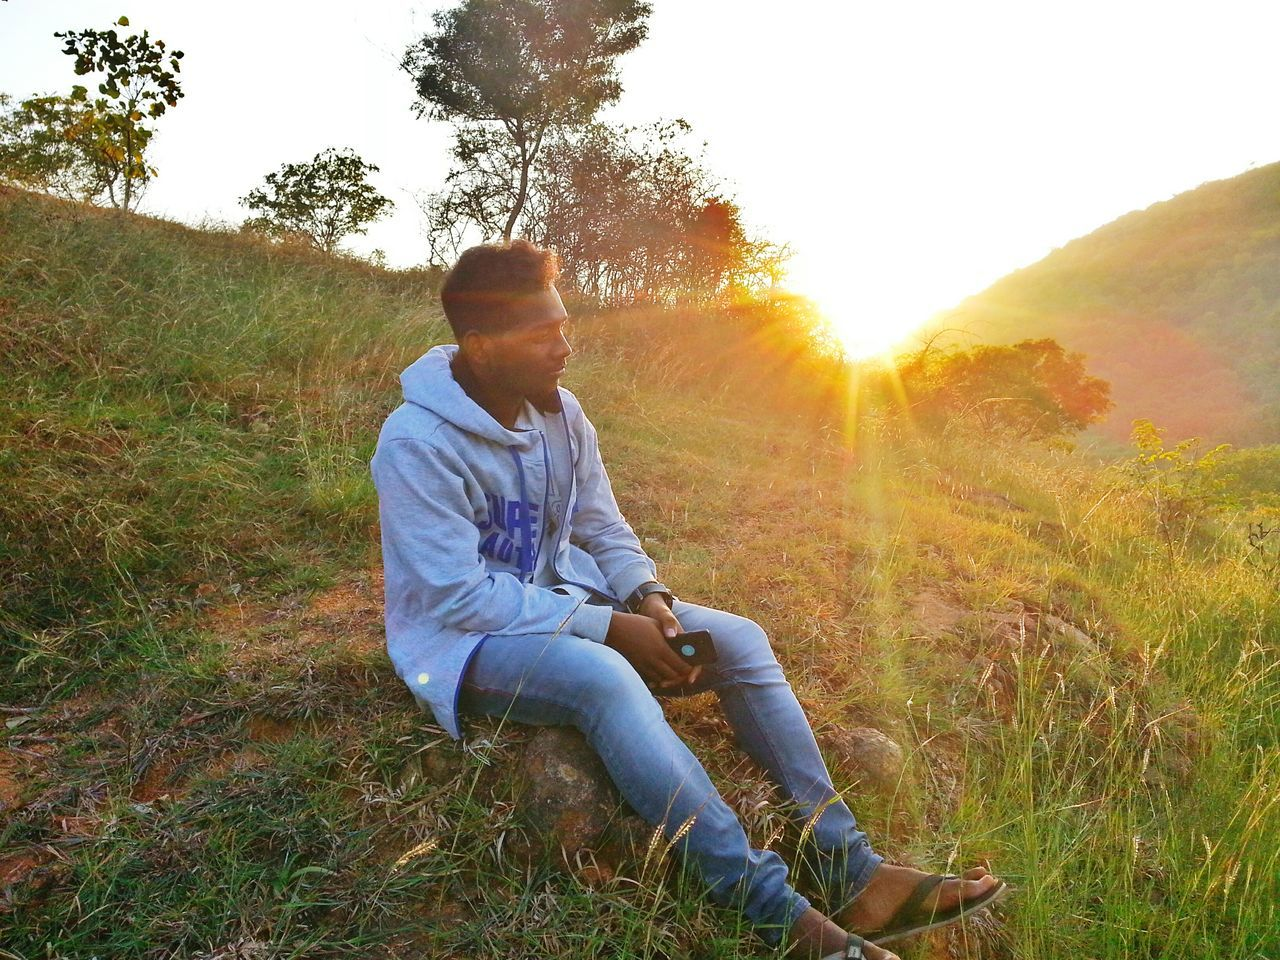 Only Men Sunset Lens Flare Sunlight Back Lit Sitting Sun Nature Outdoors People Shirts Of EyeEm Jeans Winter Mountains Modeling Shoot Model Photography Winter_collection Mensfashion Urban Photography Embrace Urban Life Scenics Agriculture Sun_collection Sunset_collection Check This Out! I Show The World What I See